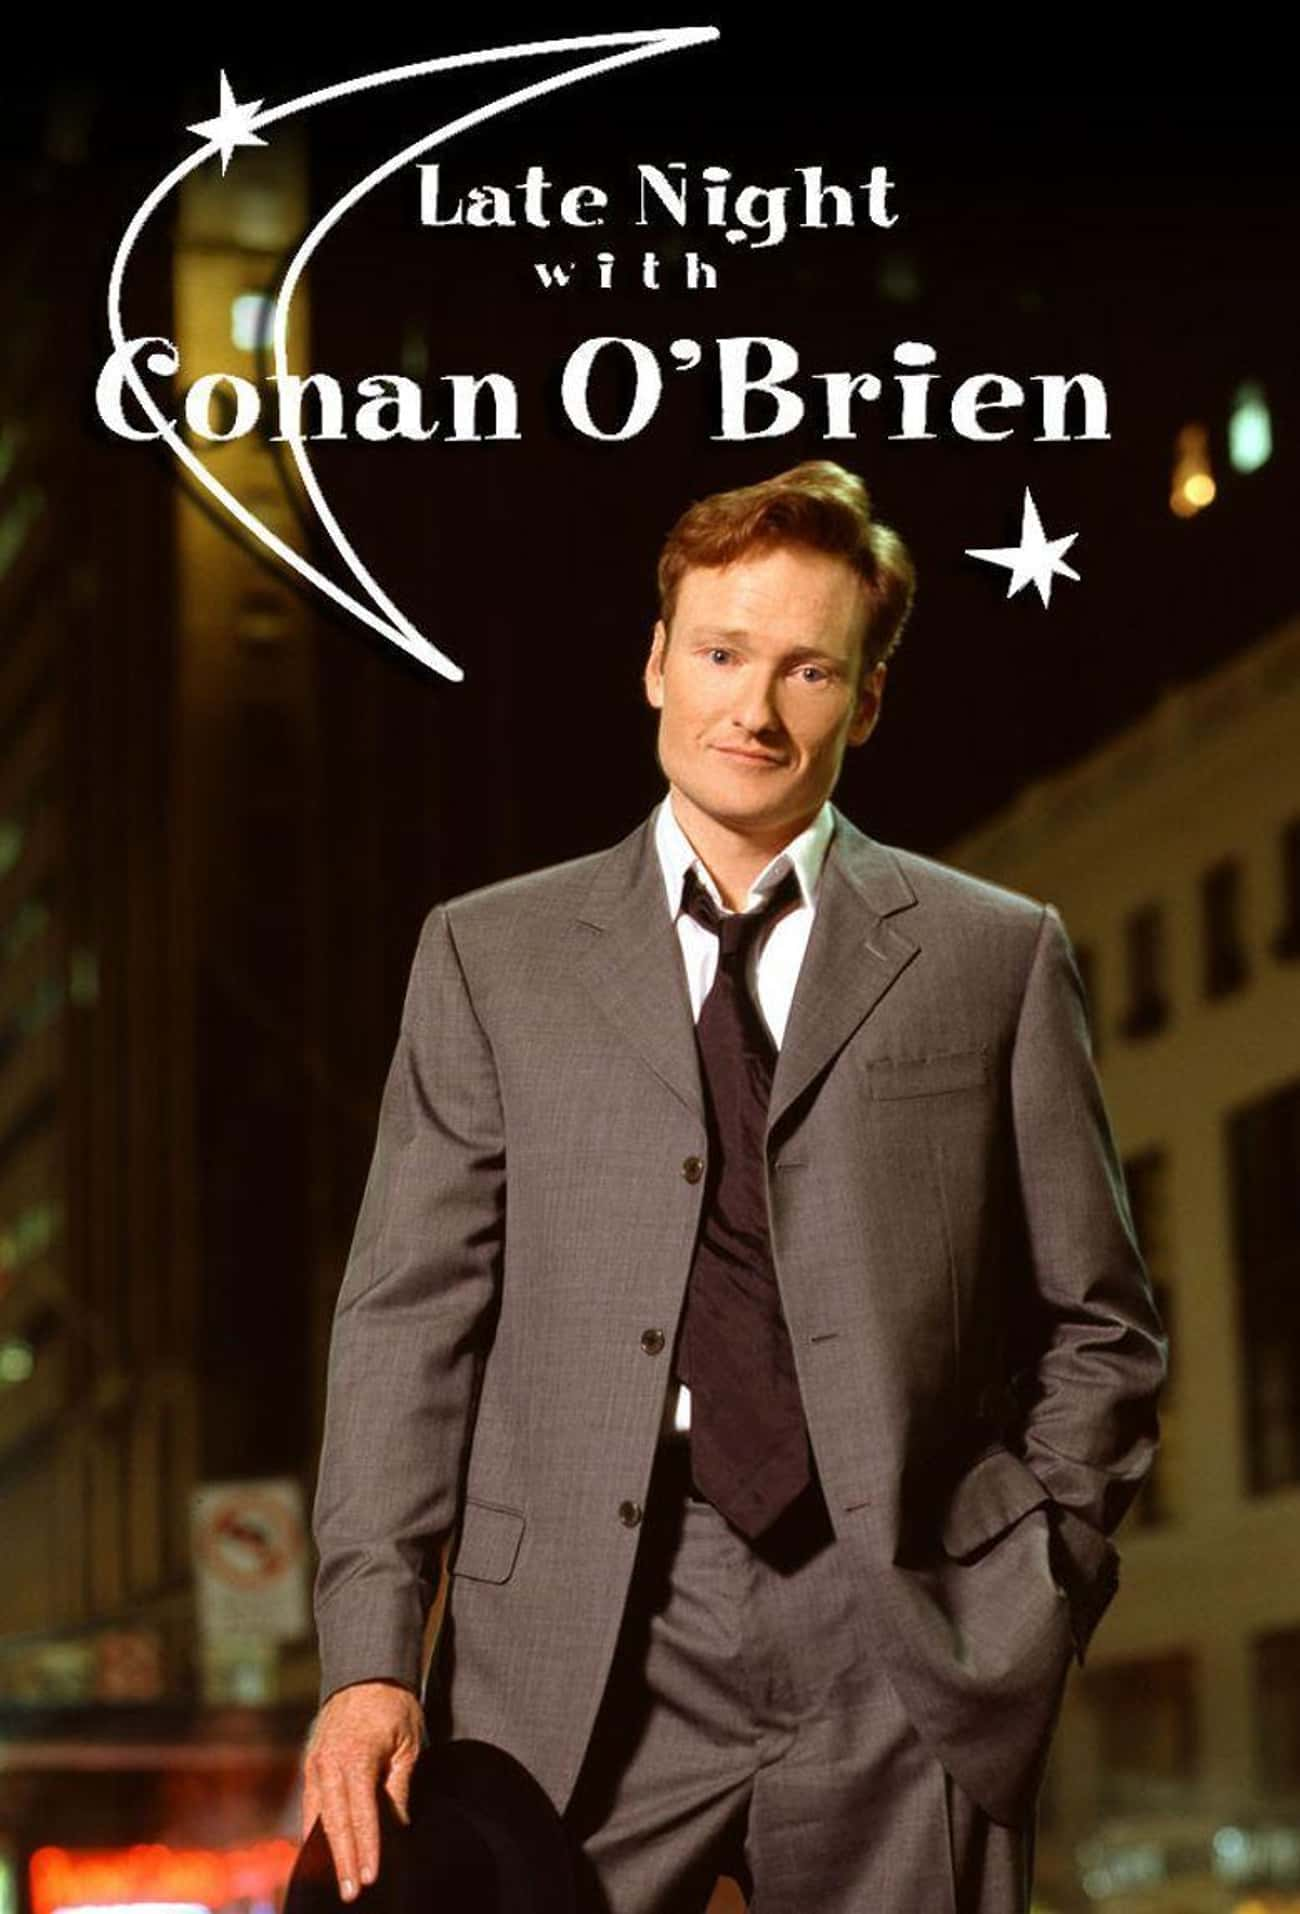 Late Night with Conan O'Brien is listed (or ranked) 2 on the list The Best Late Night Talk Shows From NYC